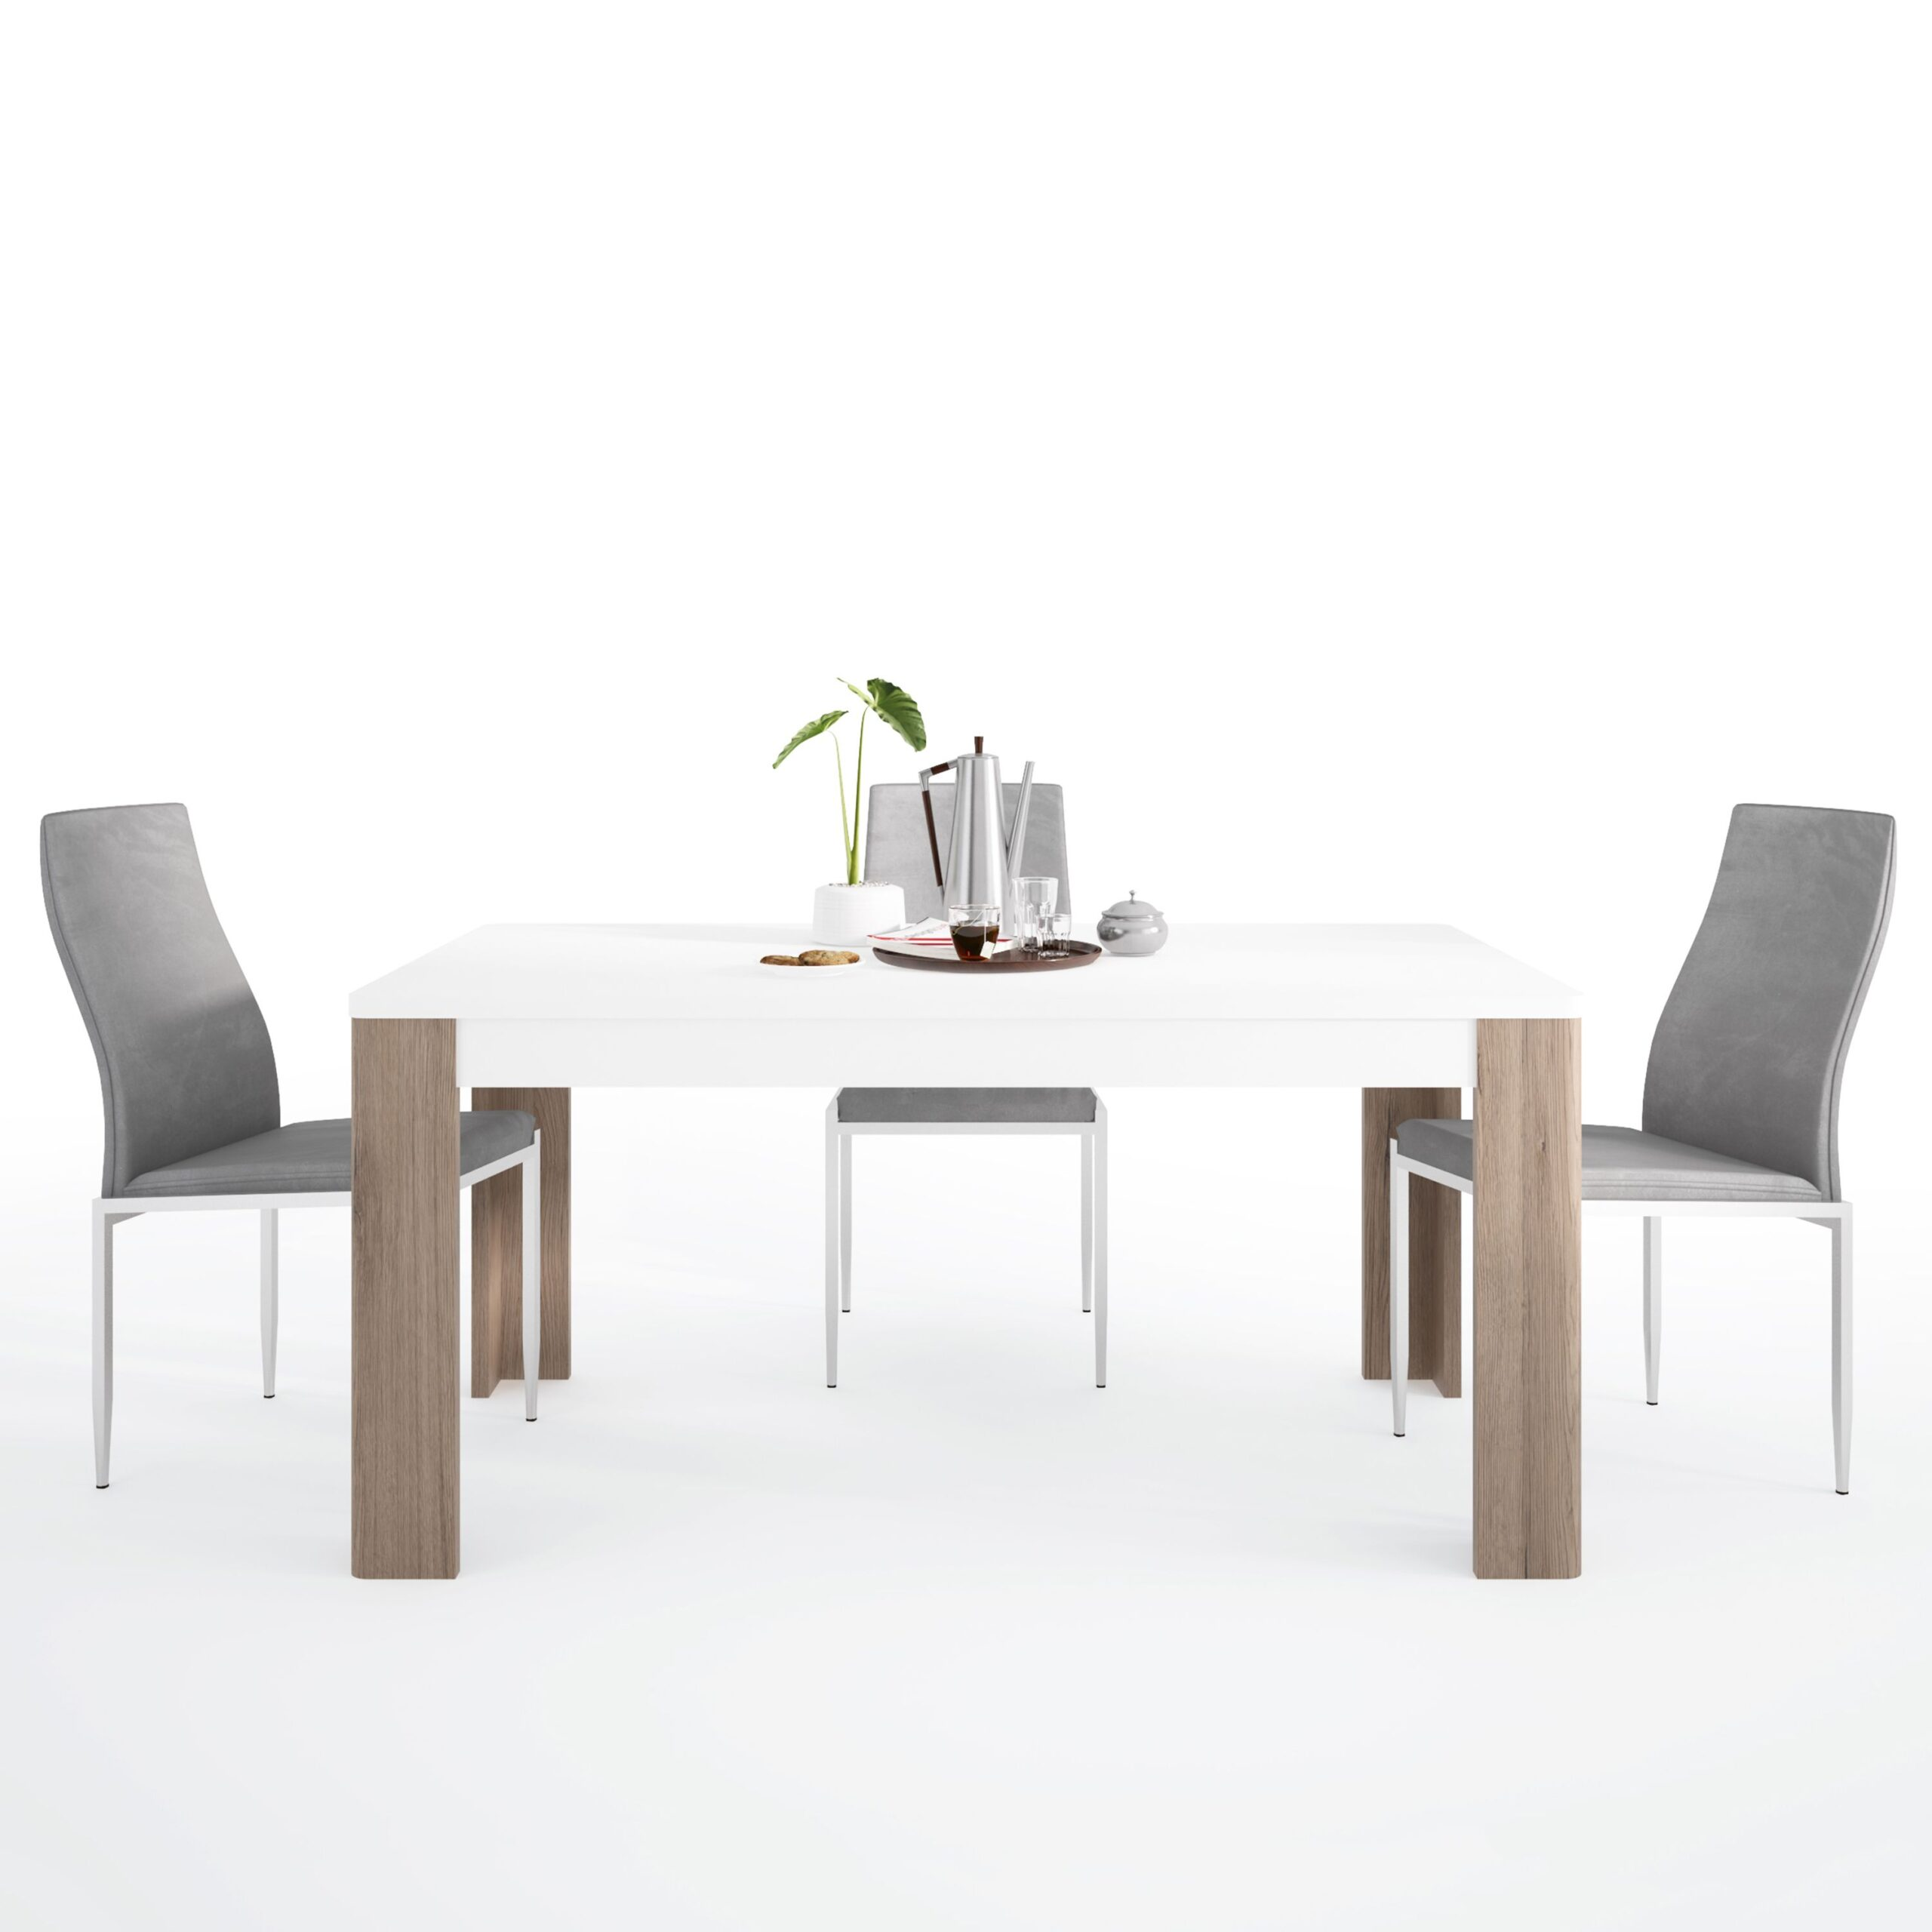 Canada Dining set package Canada 160 cm Dining Table + 6 Lillie High Back Chair Grey.